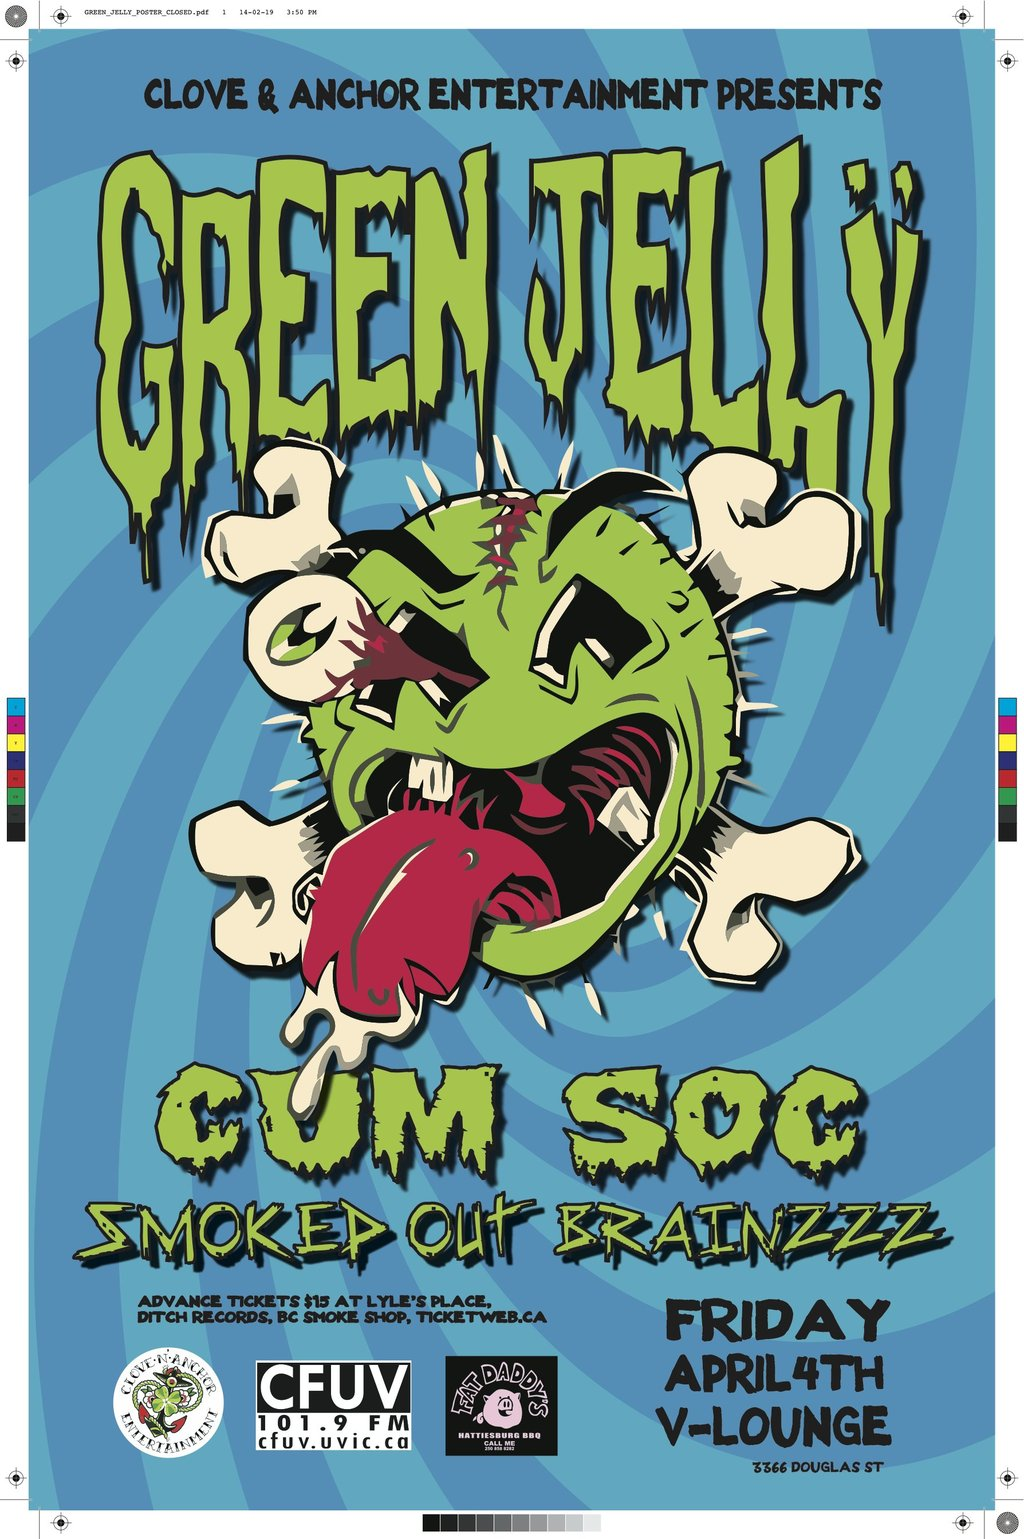 Green Jelly, Cum Soc, Smoked Out Brainzzz @ V-lounge - Apr